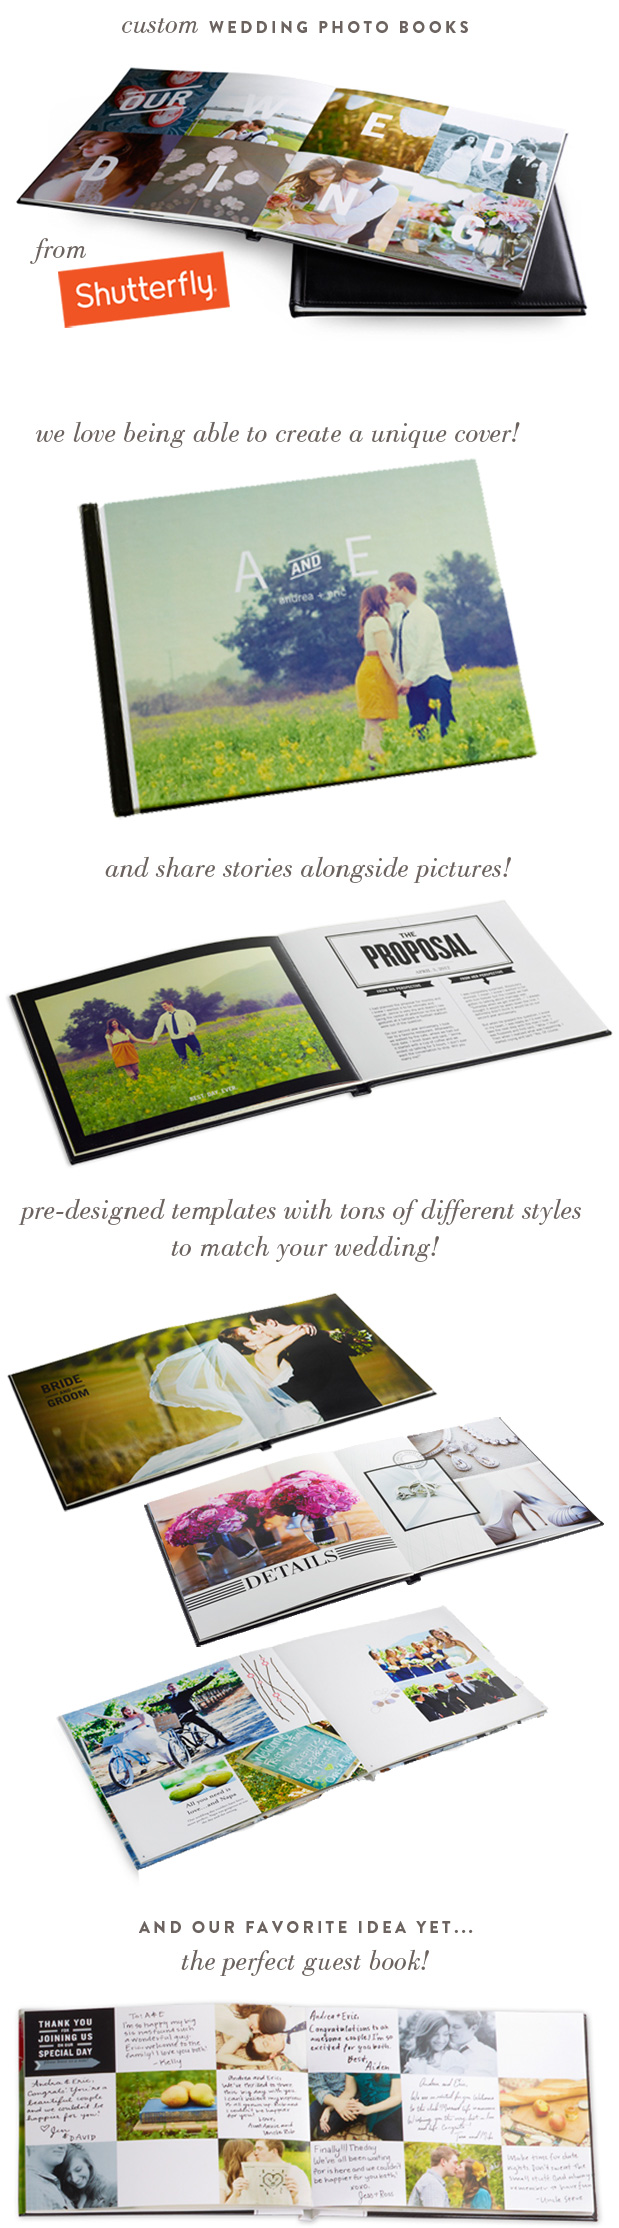 Wedding Blog Shutterfly Wedding Photo Books